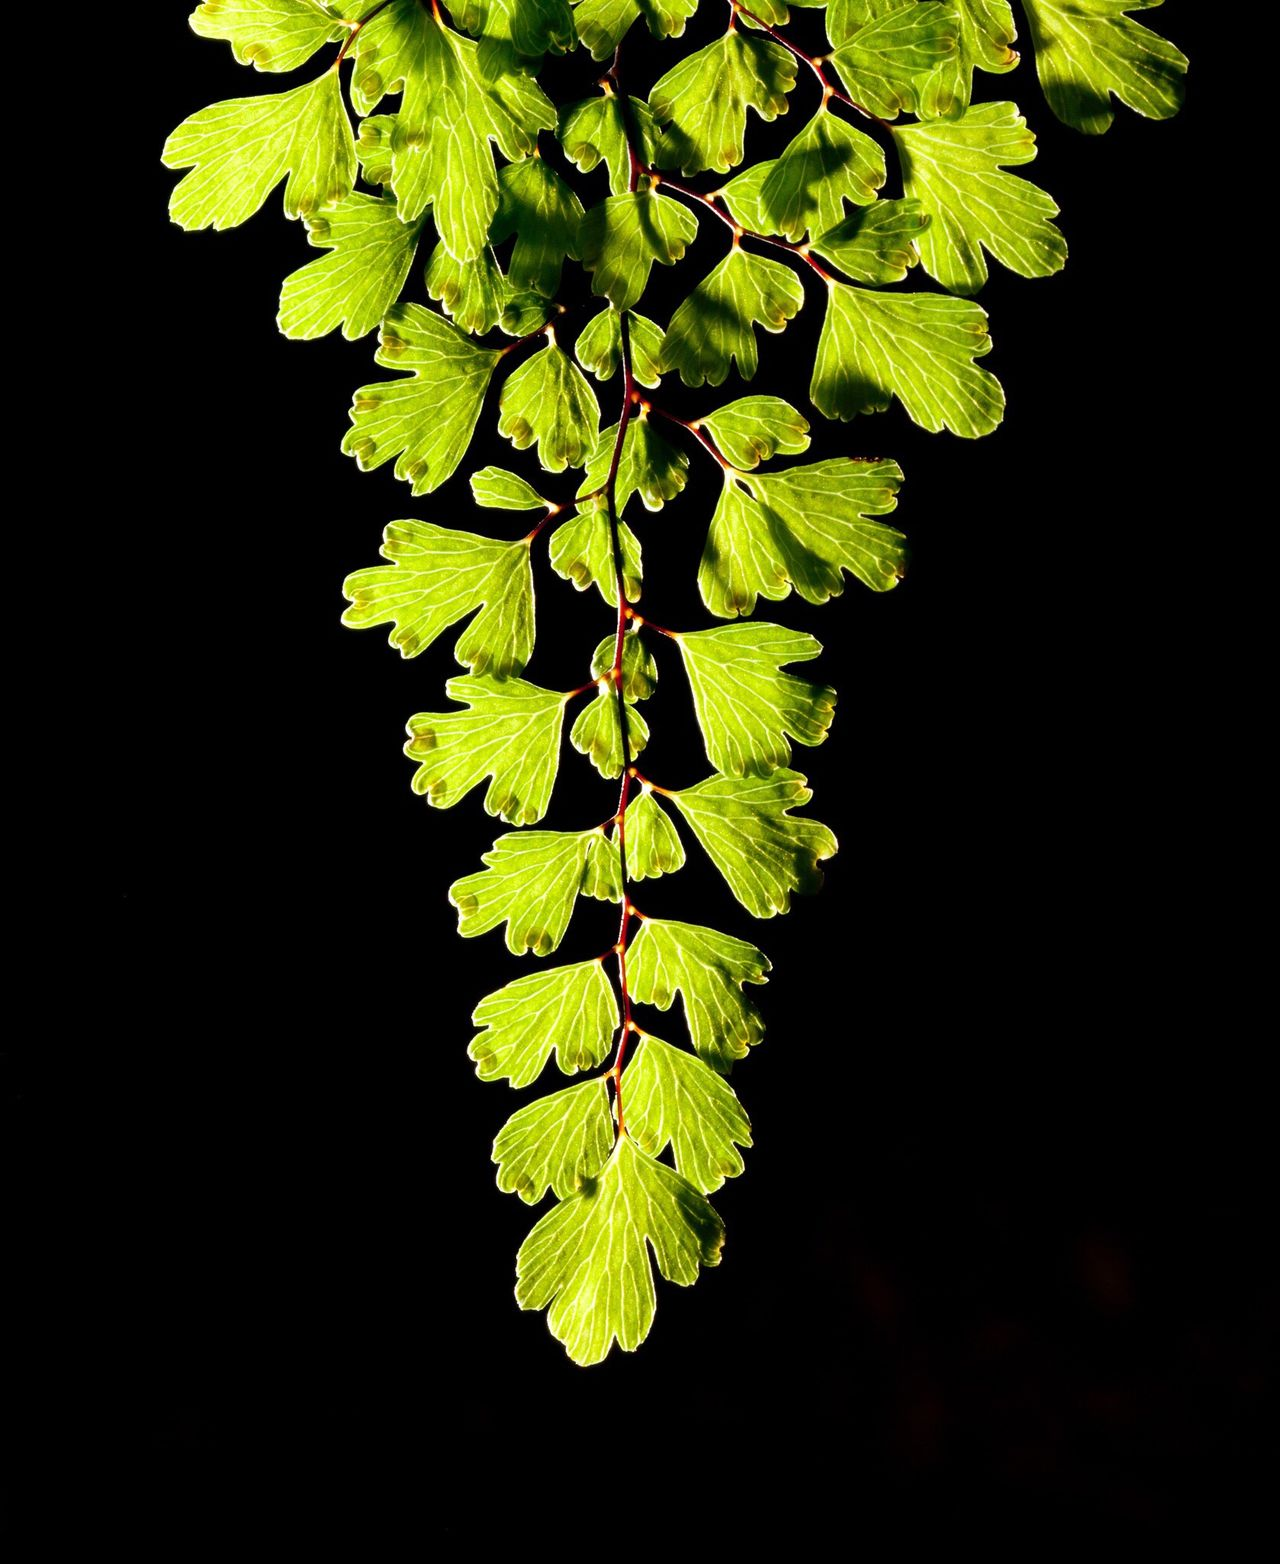 Black Background Leaf Green Fern Botany Glow Glowing Glow In The Dark Leaves Nature Nature Close-up Freshness No People